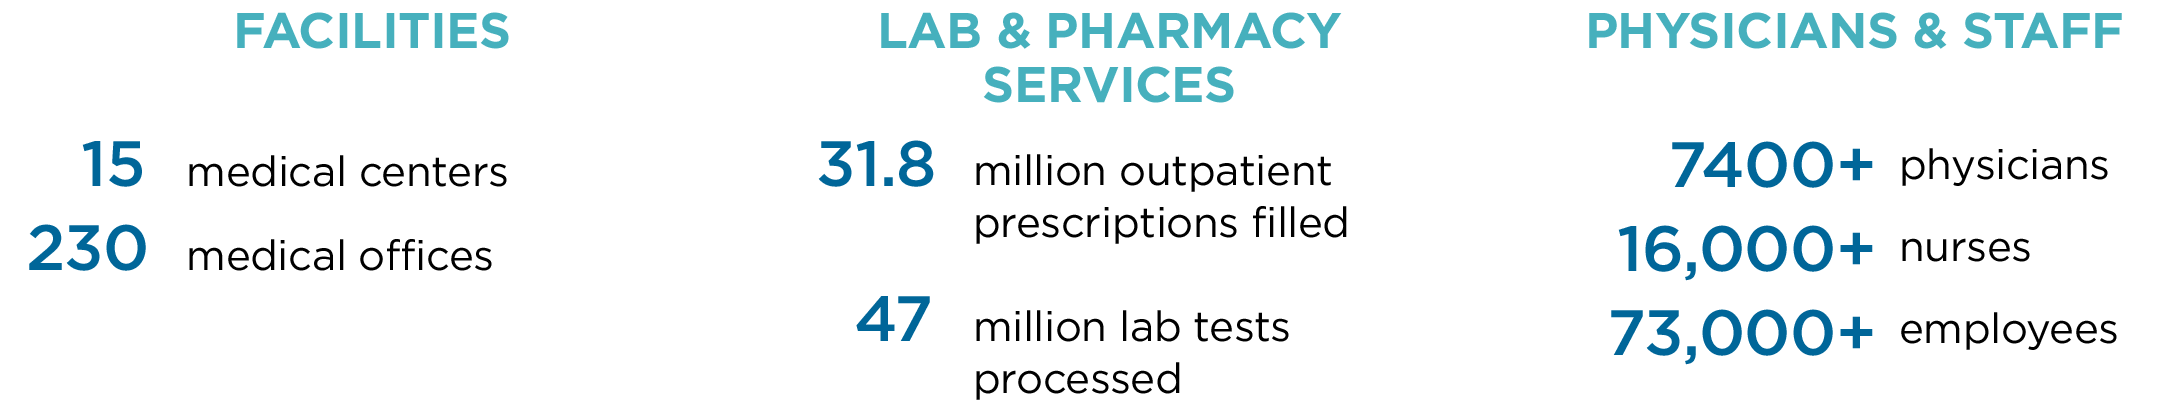 Facilities: 15 medical centers, 230 medical offices. Lab & Pharmacy Services: 31.8 million outpatient prescriptions filled. 47 million lab tests processed. Physicians & staff: 7400+ physicians, 16,000+ nurses, 73,000+ employees.